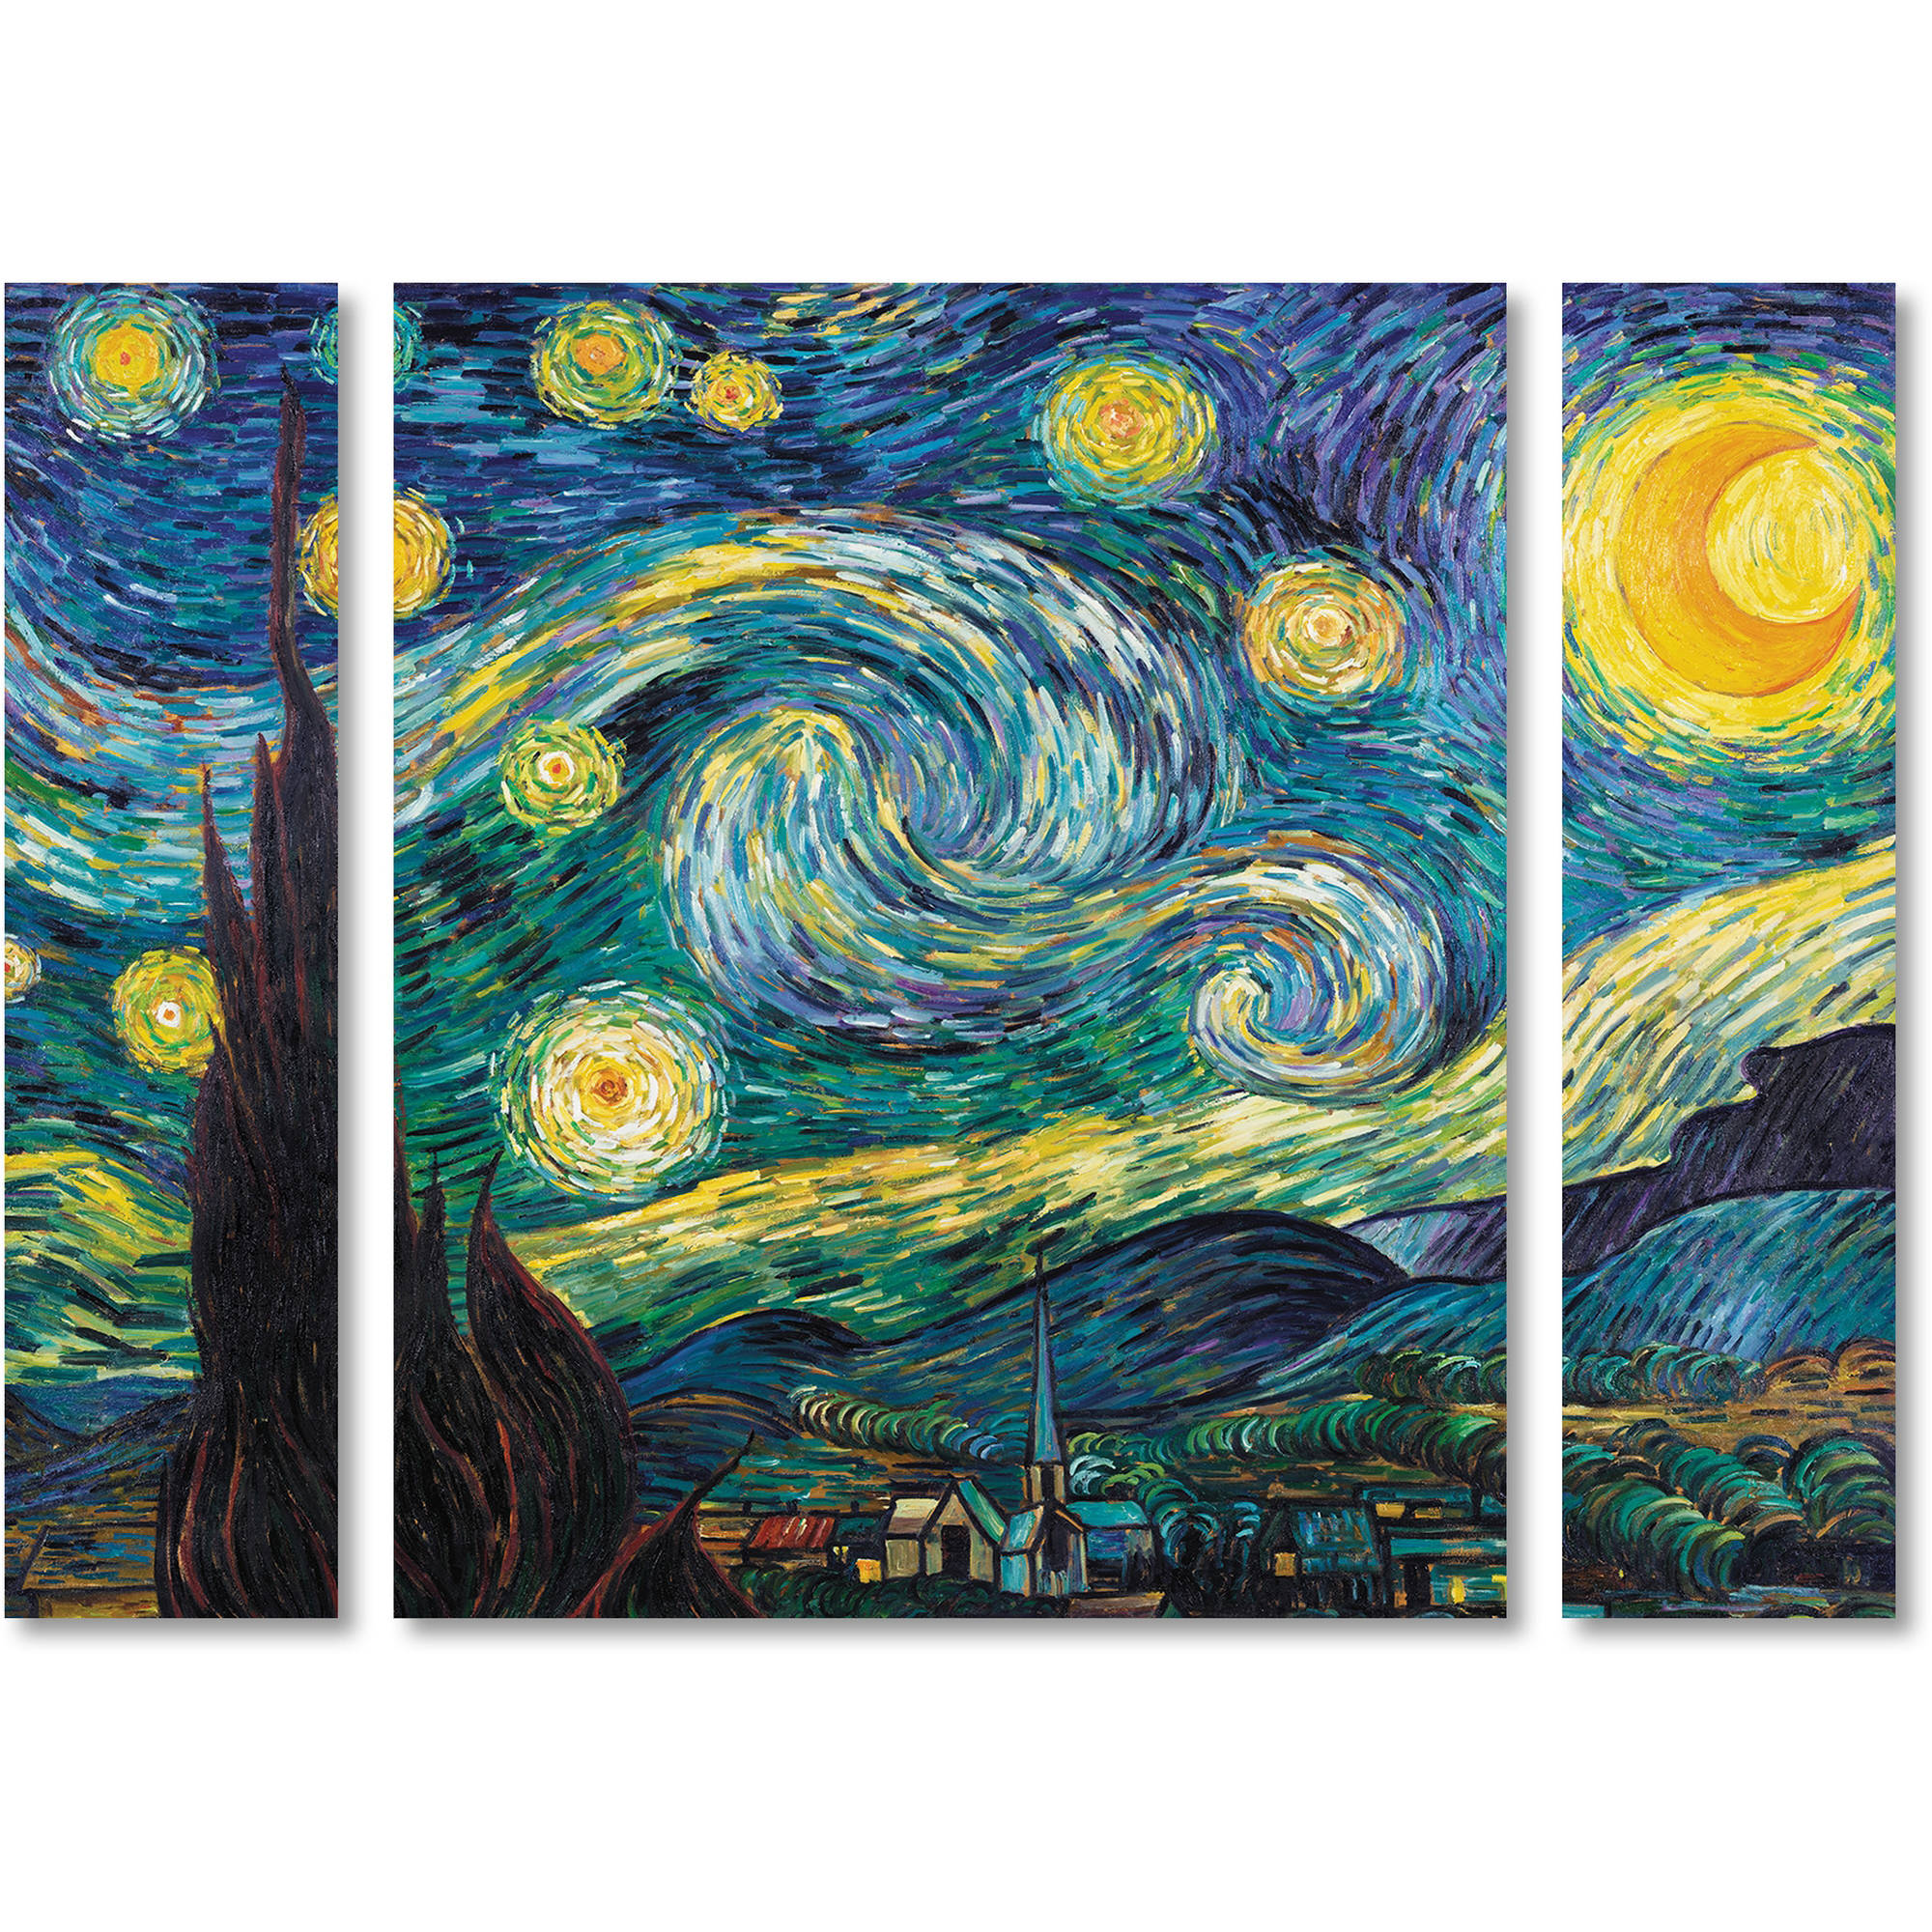 Starry Night Vincent van Gogh Poster of Painting Fine Art Giclee/' 24x36 inch